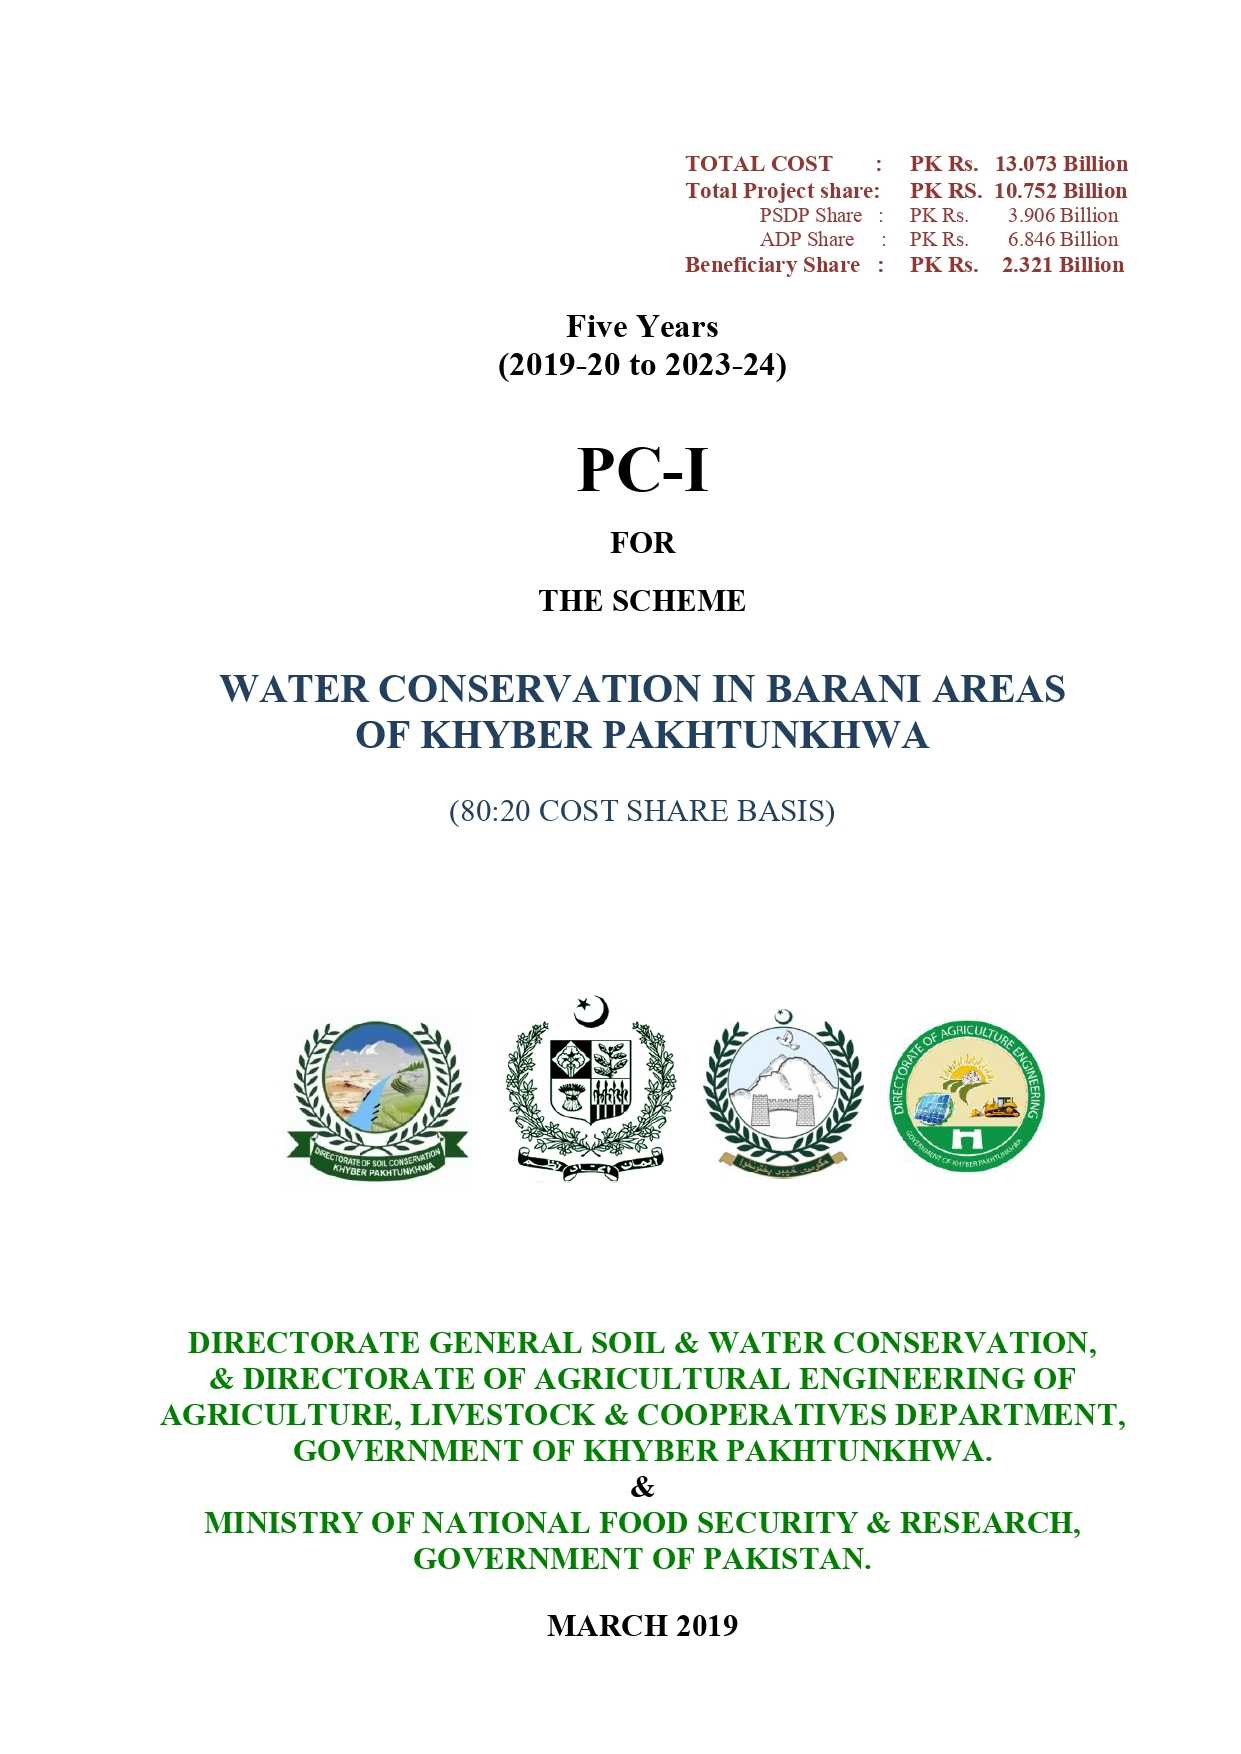 FINAL_PC-I_KP-SWC_Water_Conservation_in_Brani_Areas_of_Khyber_Pakhtunkhwa_May_2nd__2019_(WITHOUT_ANNEXURES)_page-0001